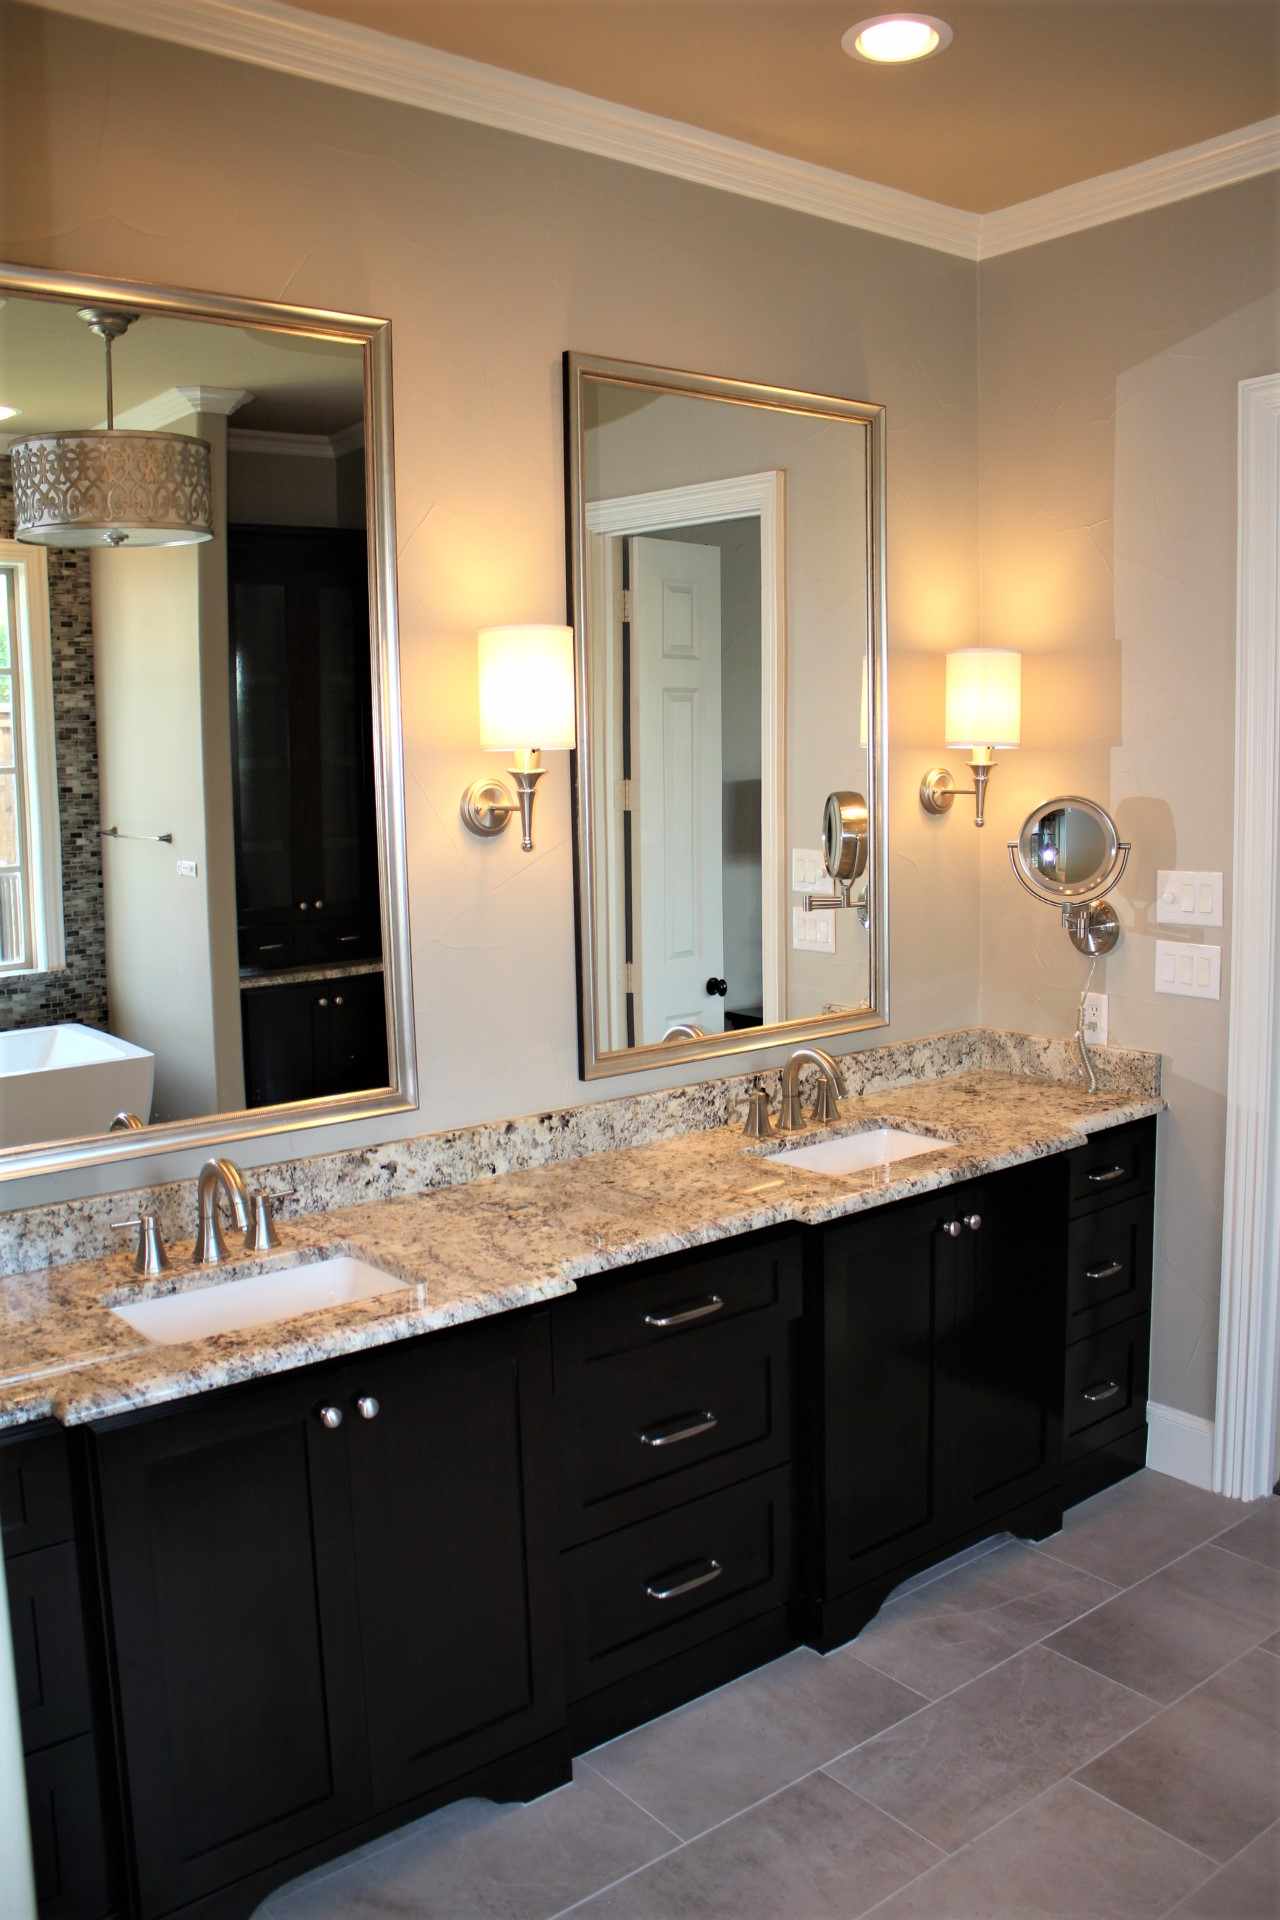 dunlap 2 kitchen and bath remodeling - Bathroom Remodel Dallas